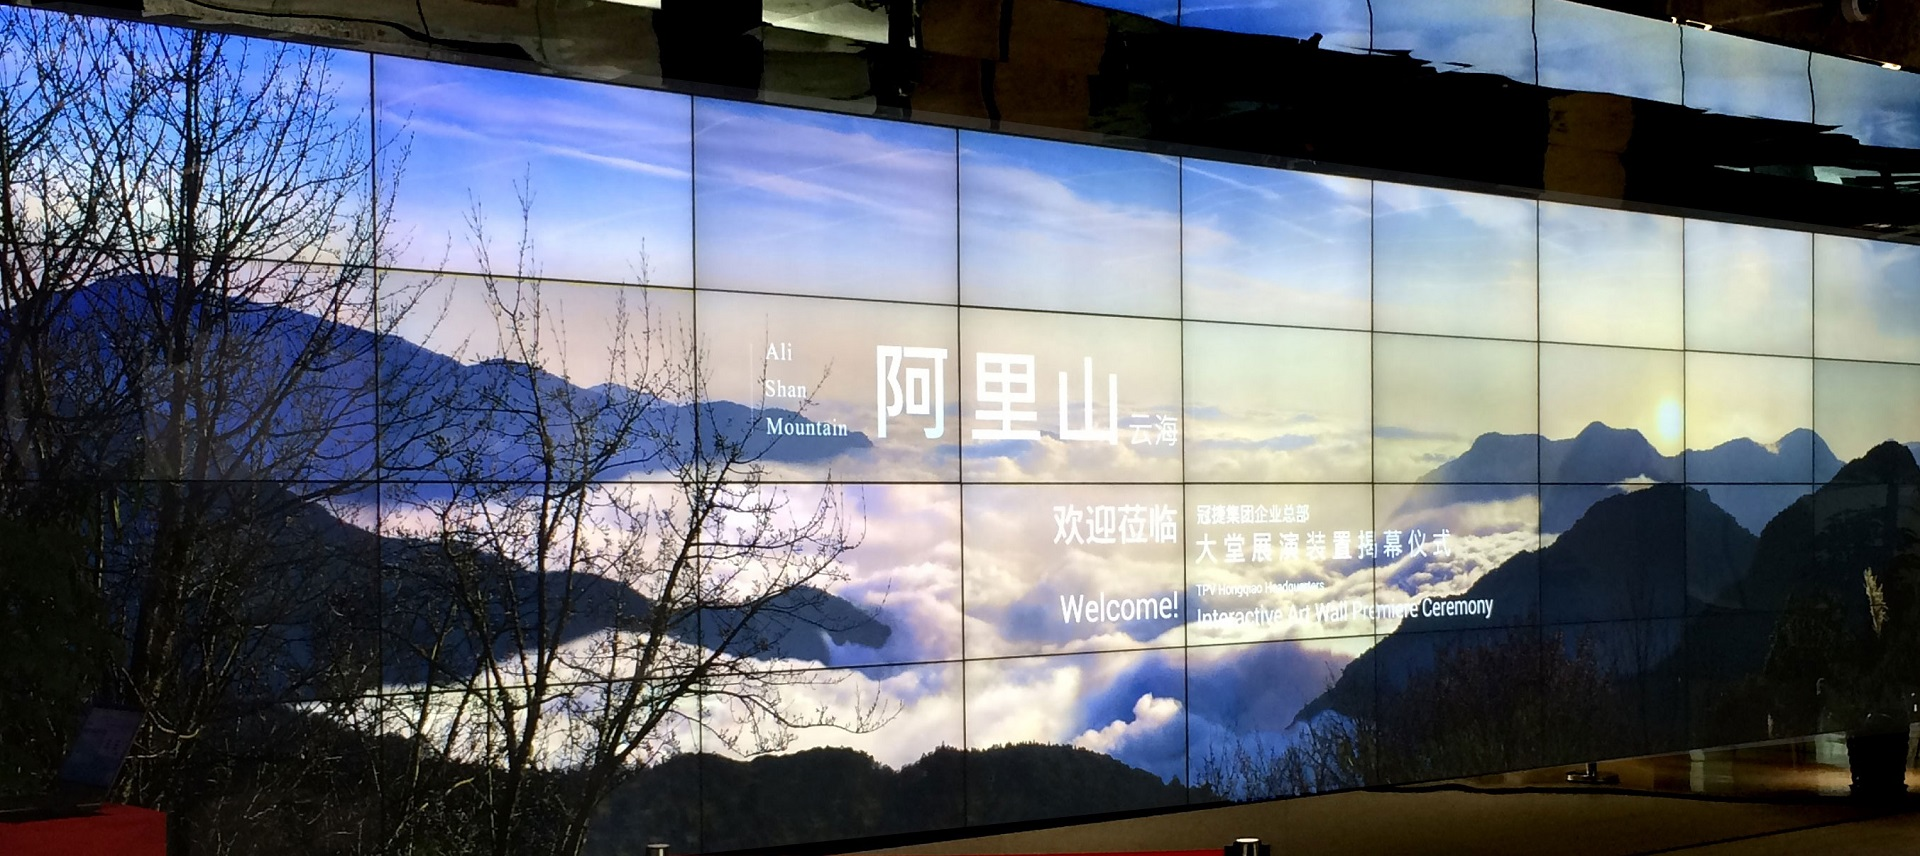 Gigantic Video Wall with full resolution -